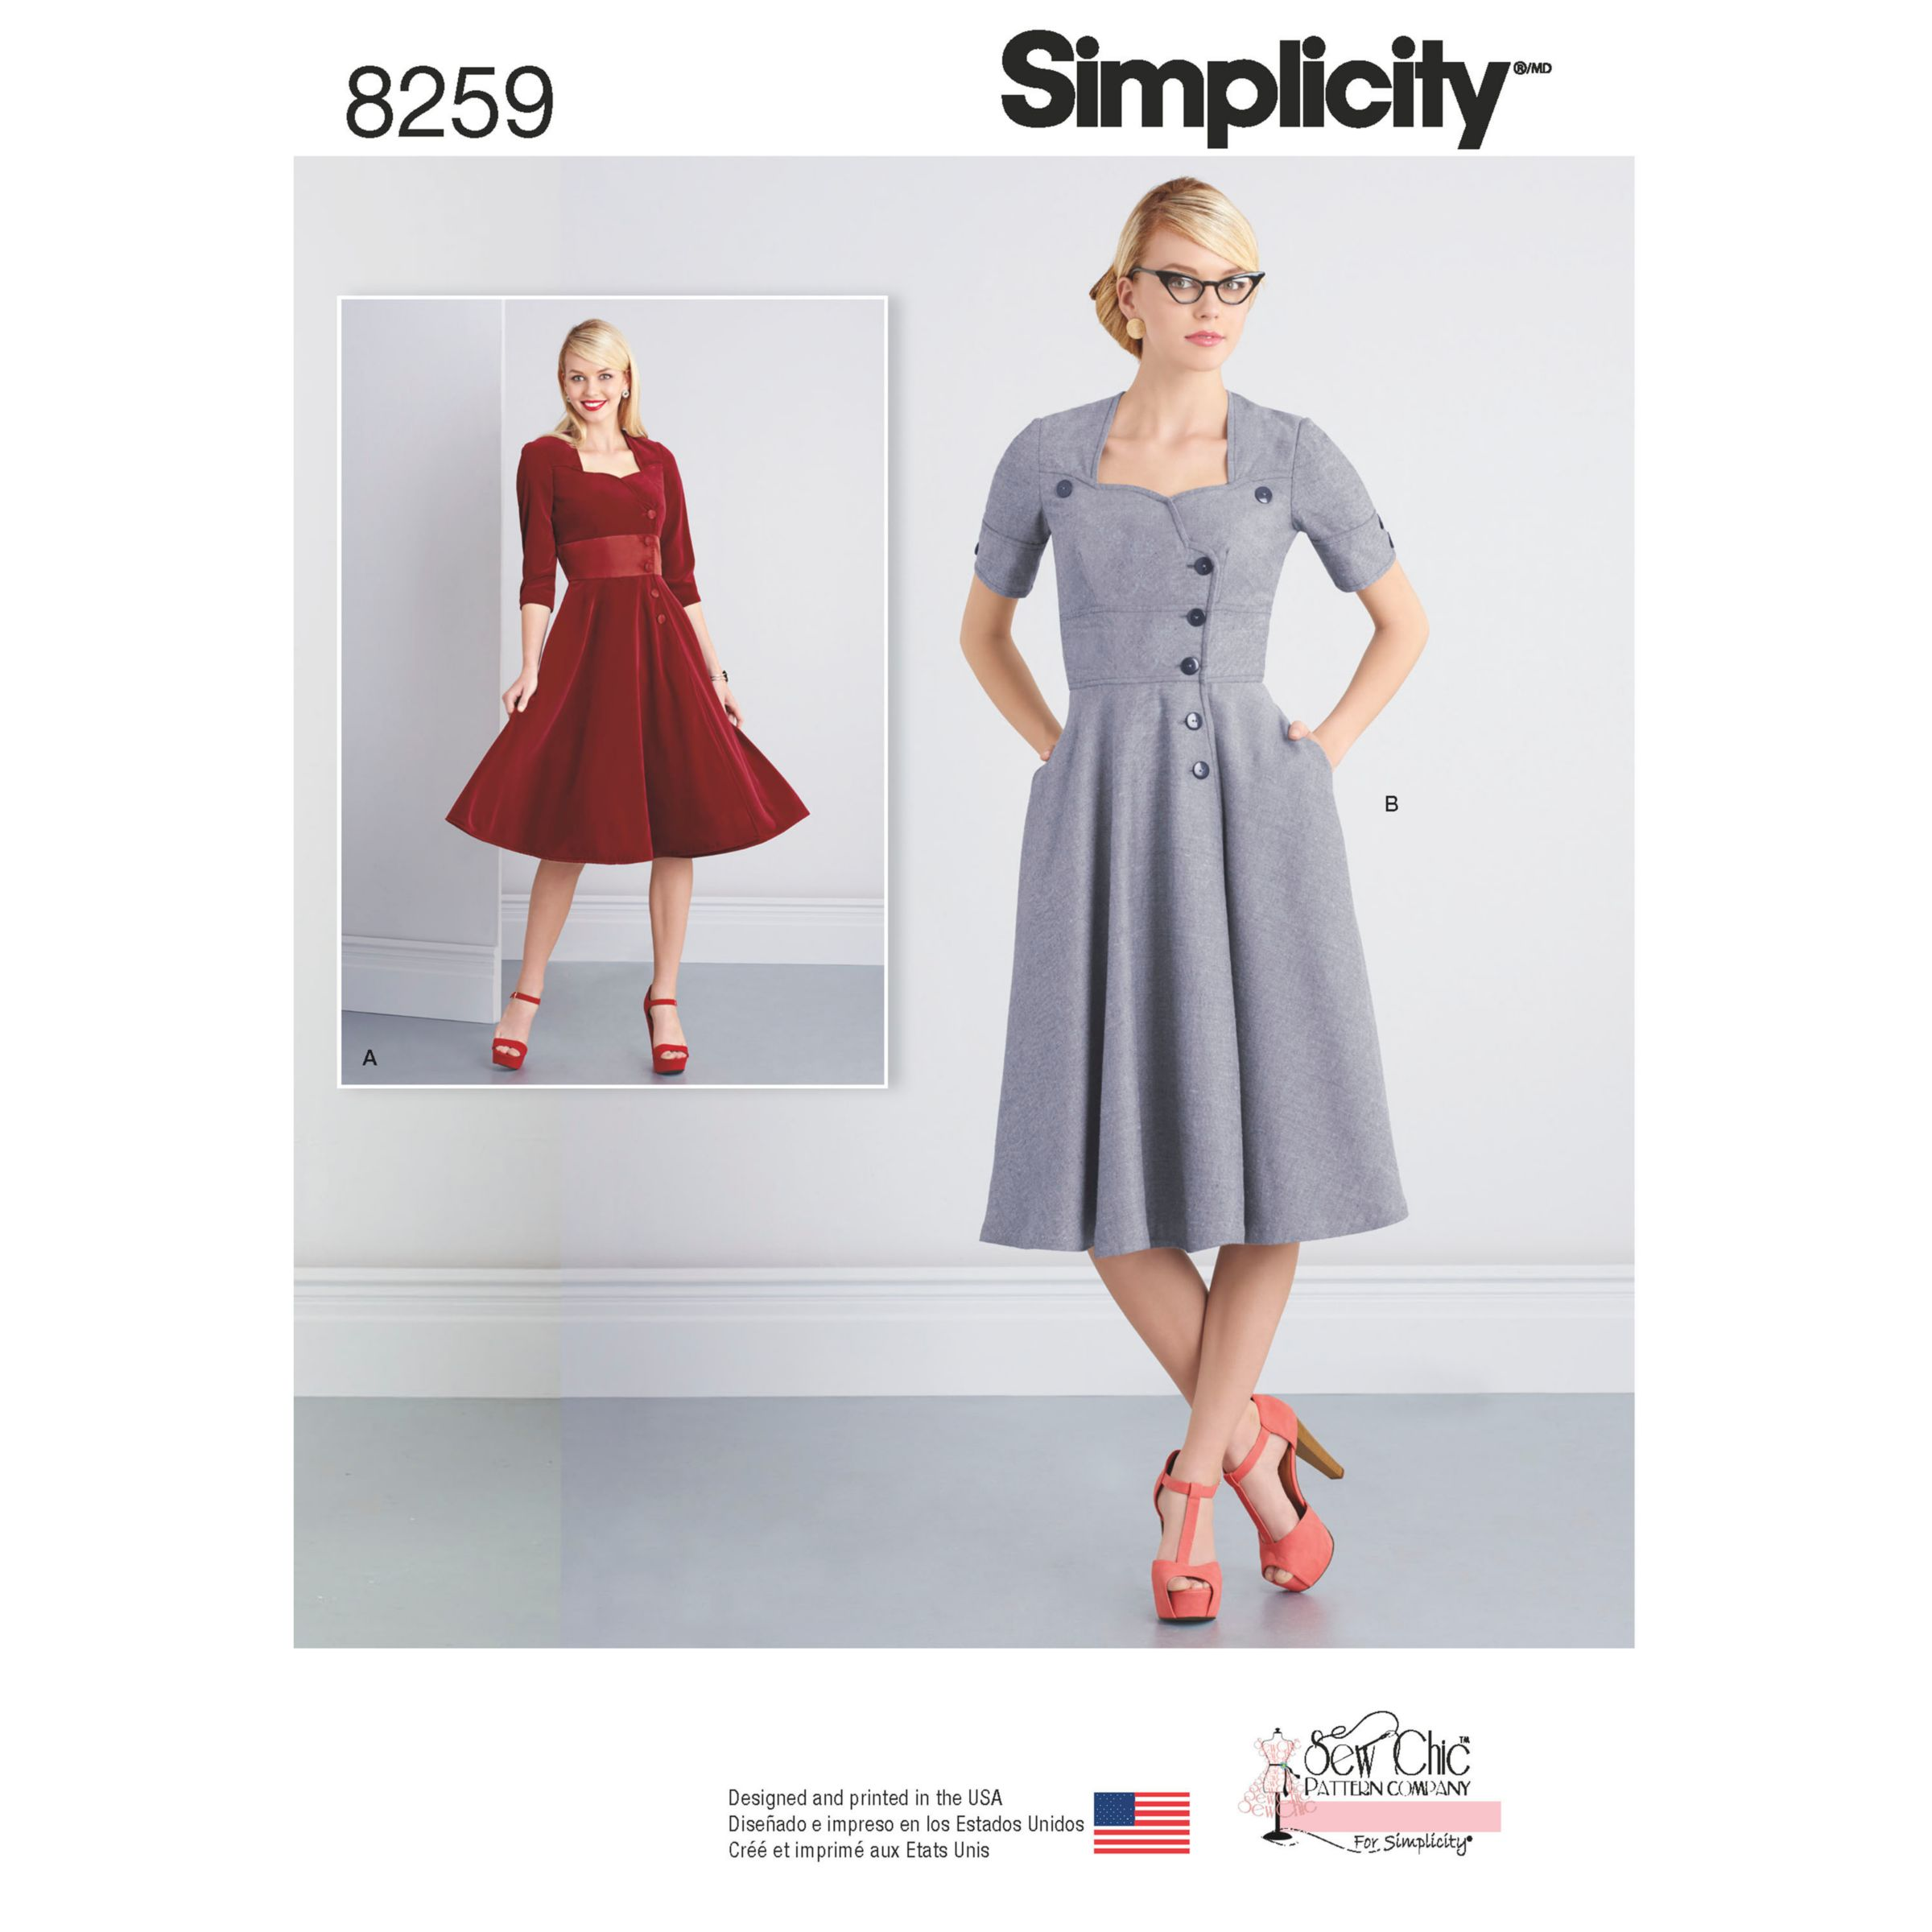 Simplicity Simplicity Misses' Sew Chic Button Front Dresses Sewing Pattern, 8259